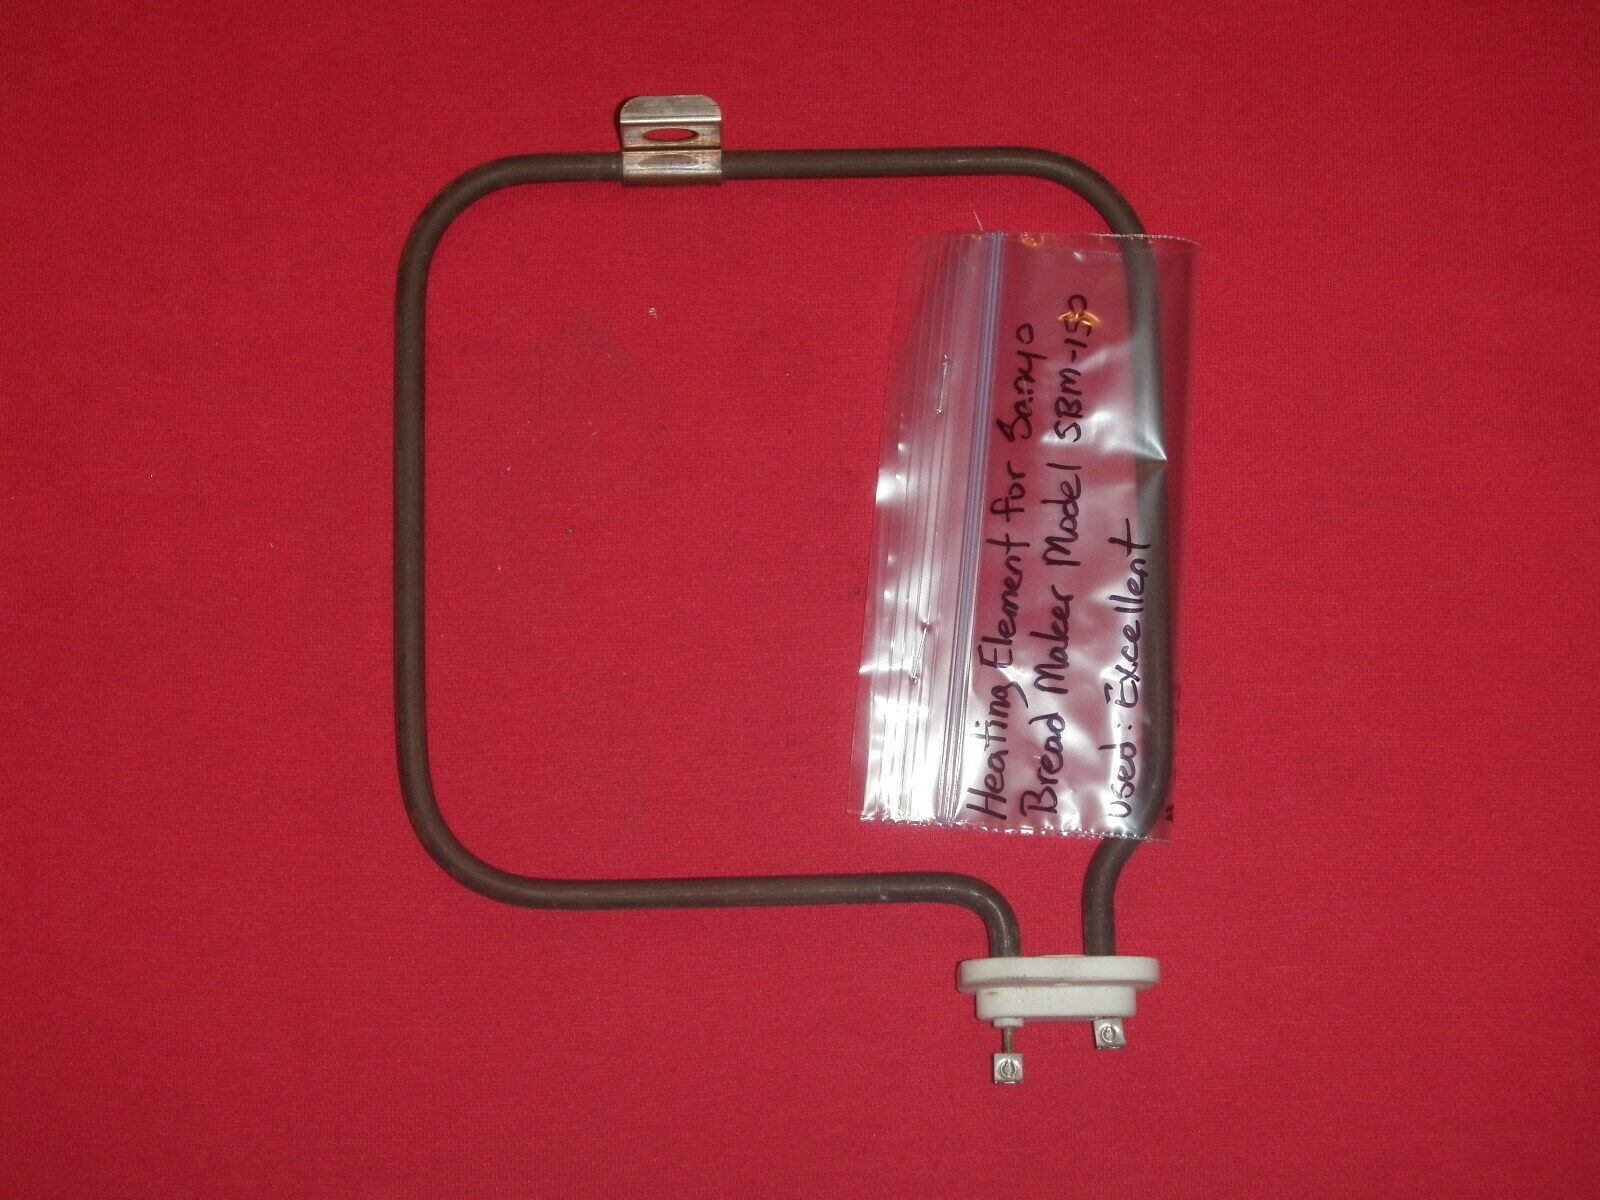 Primary image for Sanyo Bread Maker Machine Heating Element for Model SBM-150